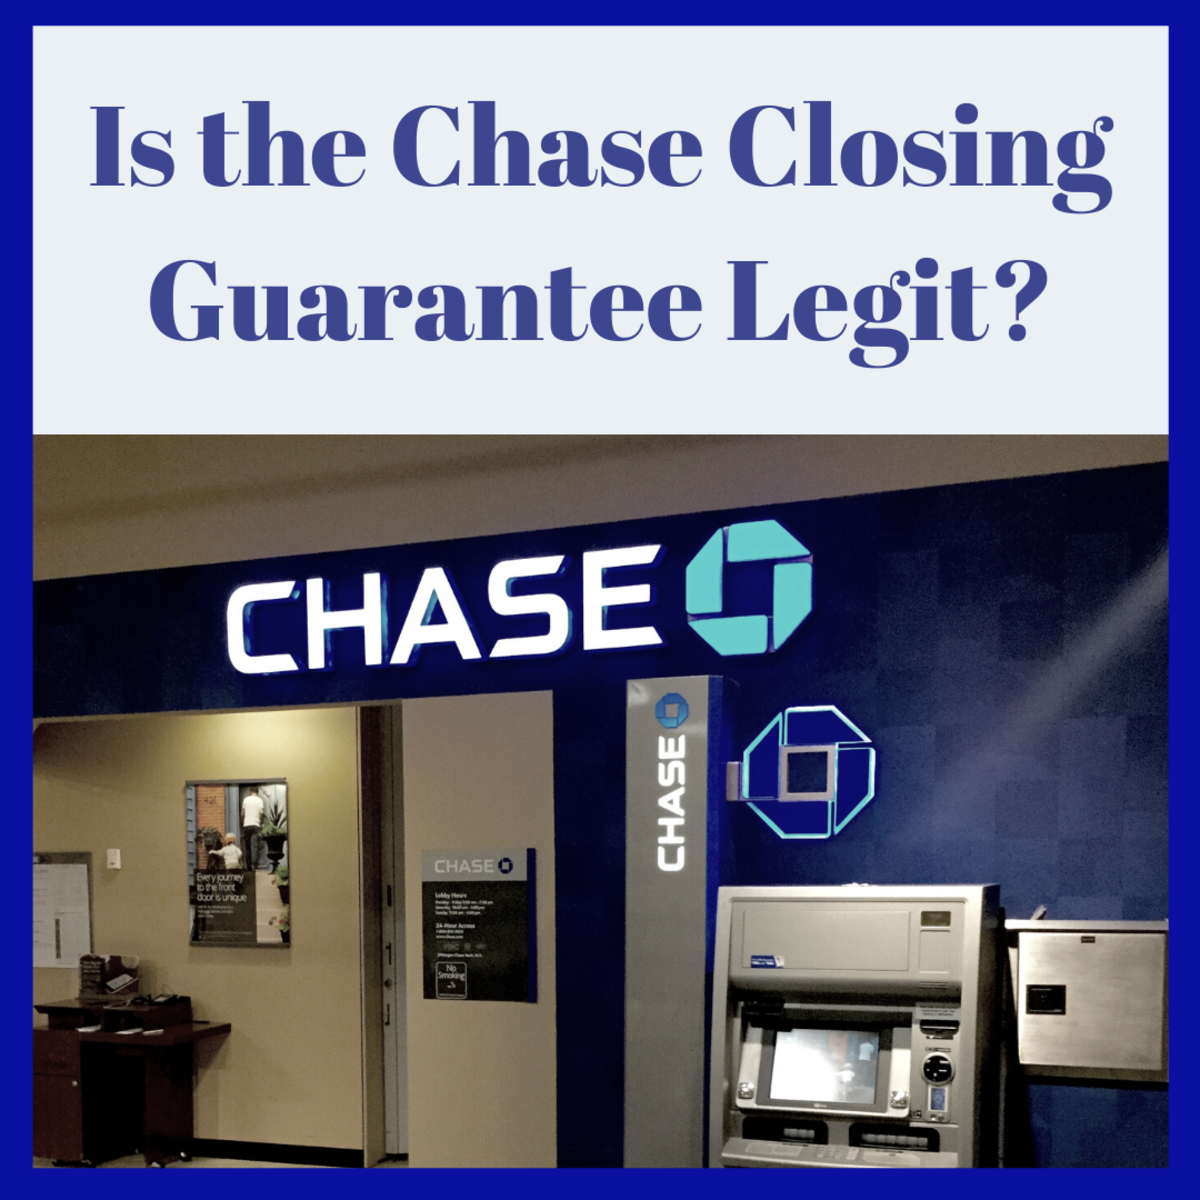 Chase home lending promises a $2,500 check if they cause you to close late. But do they keep their promises?